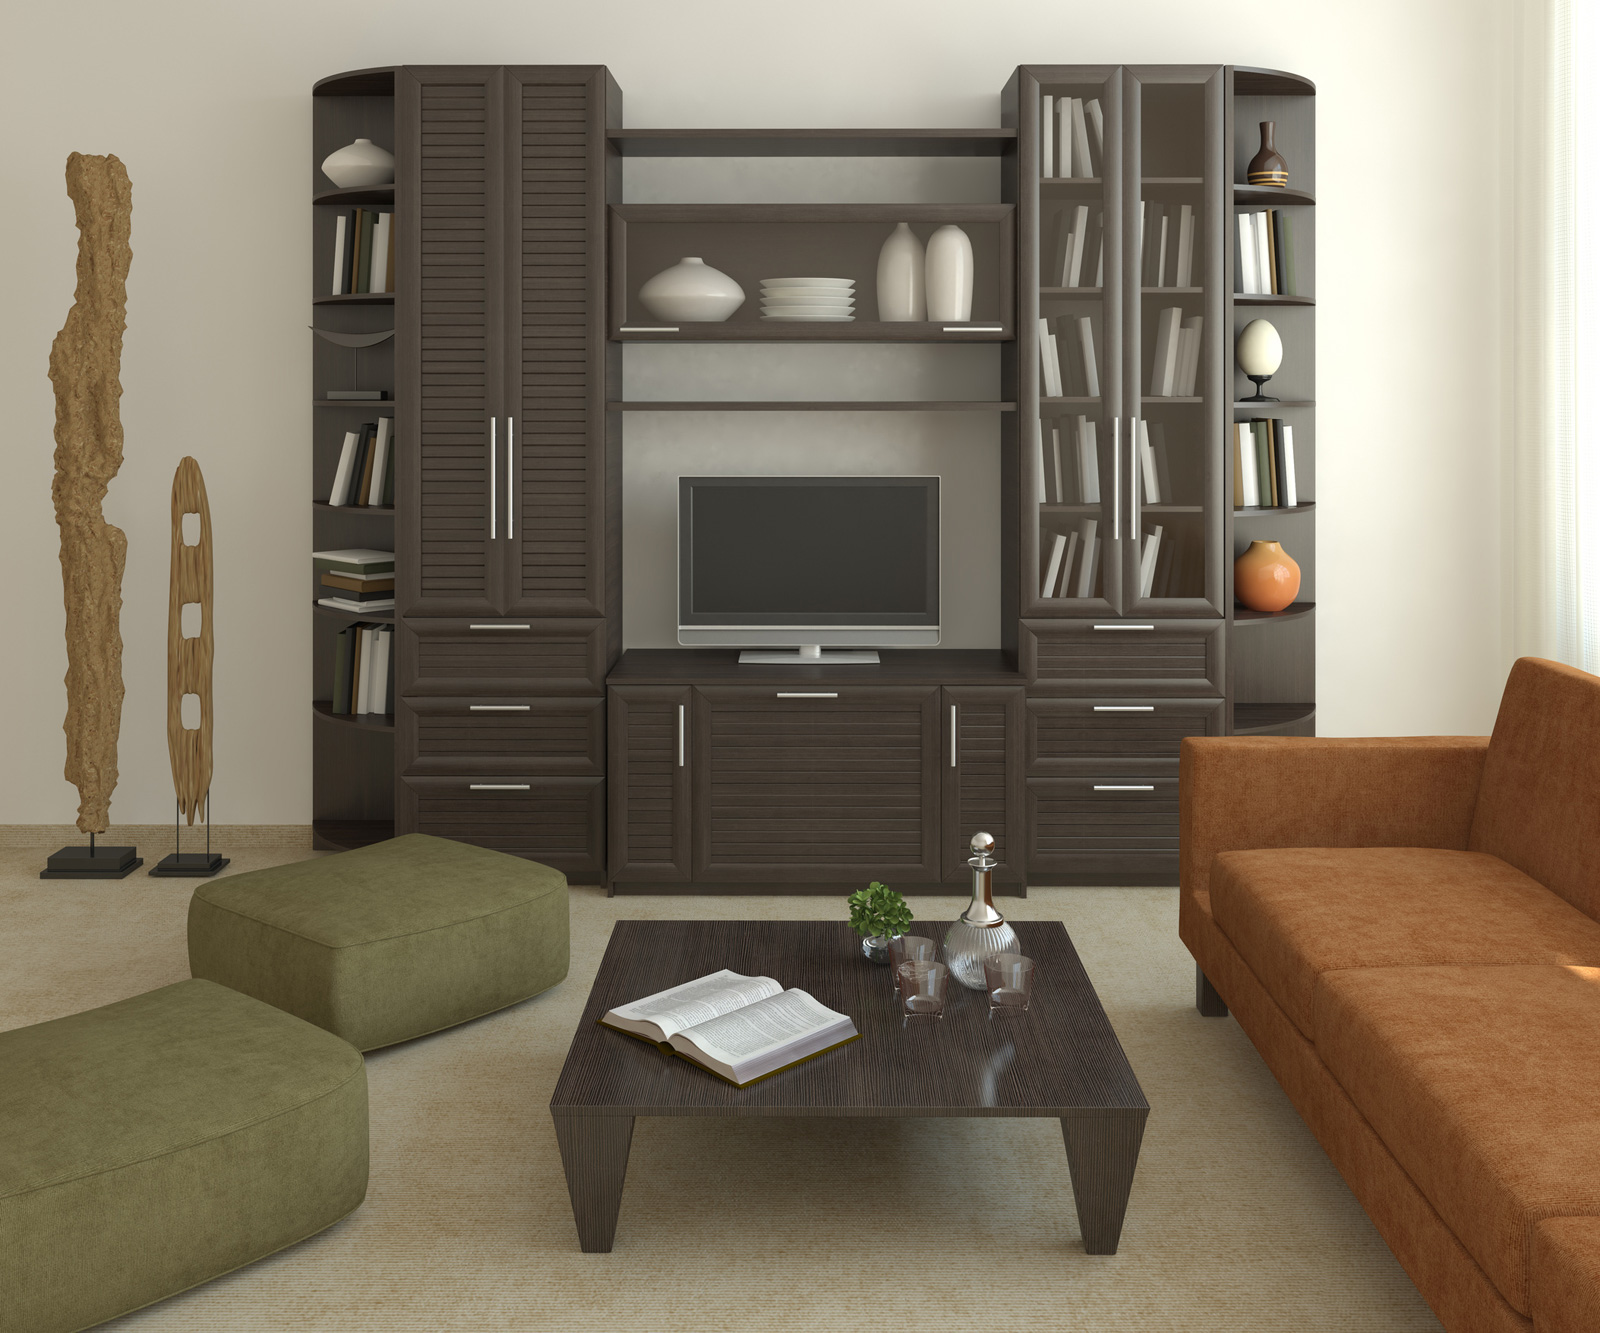 Miraculous Modern Living Room Cabinets Designs Best Design Home Download Free Architecture Designs Scobabritishbridgeorg